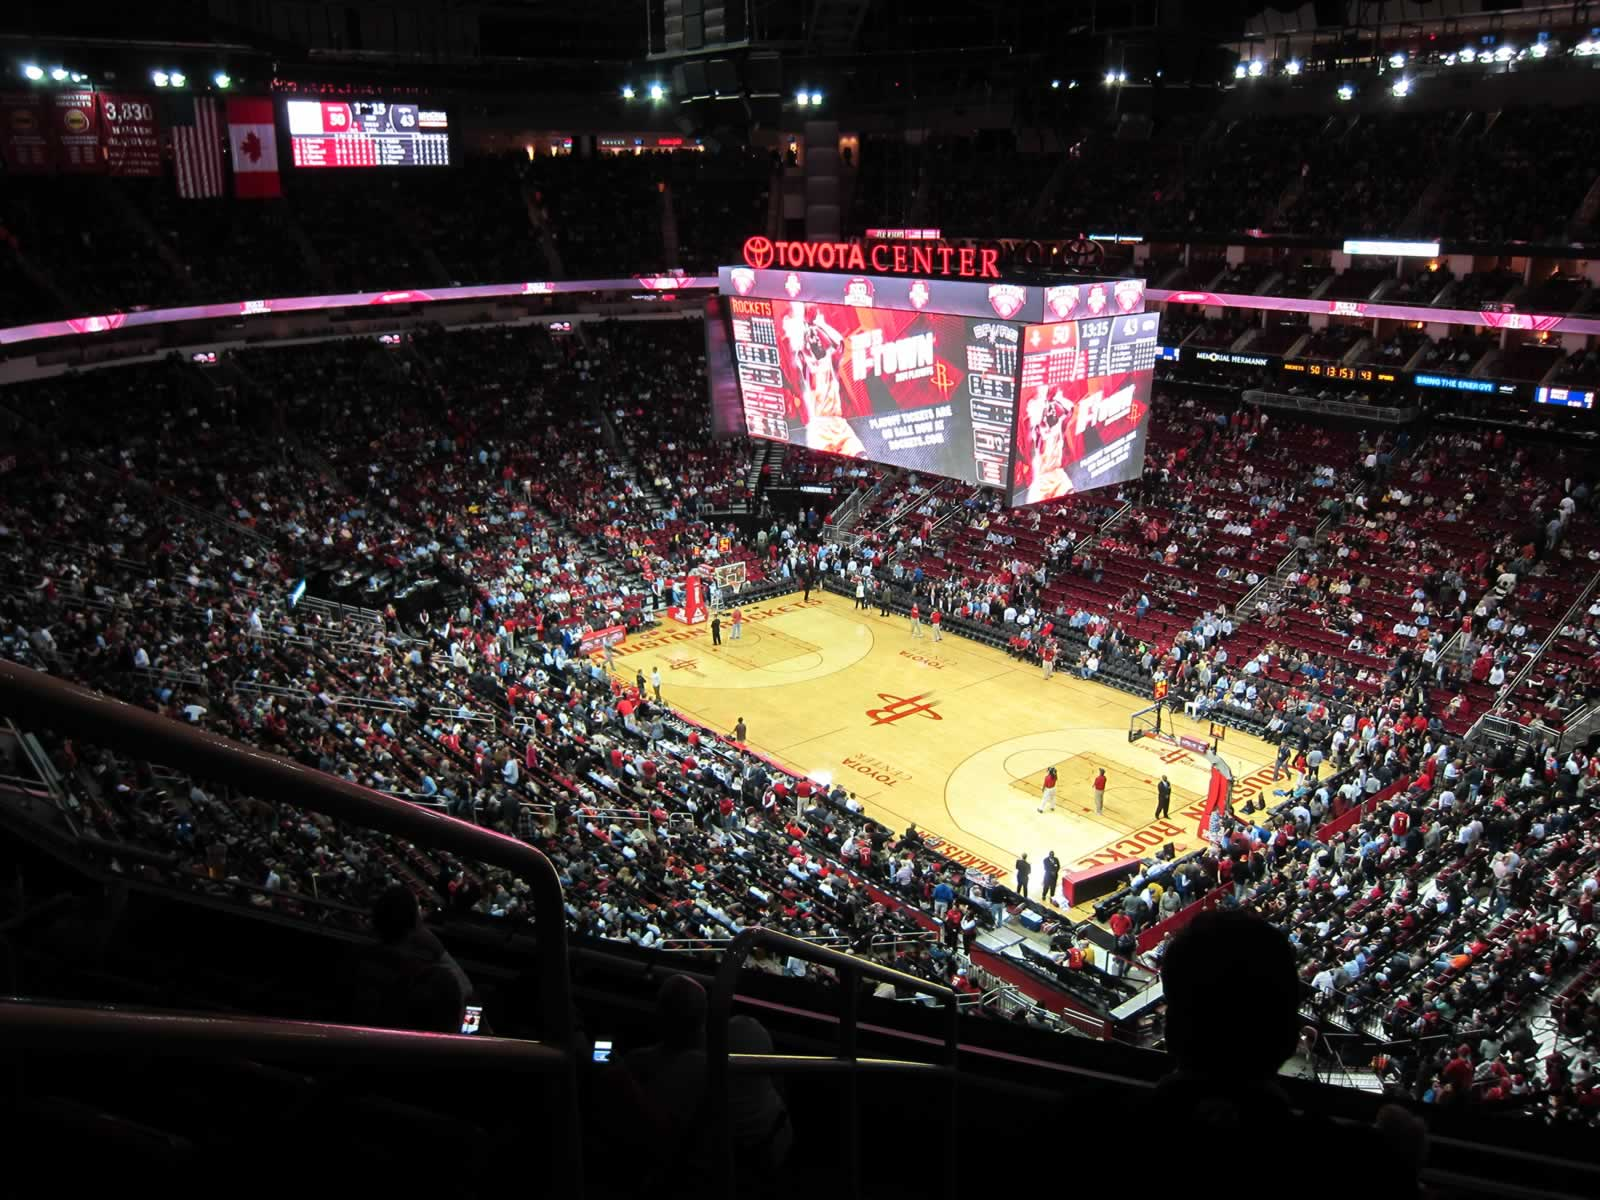 Seat View for Toyota Center Section 422, Row 6, Seat 10